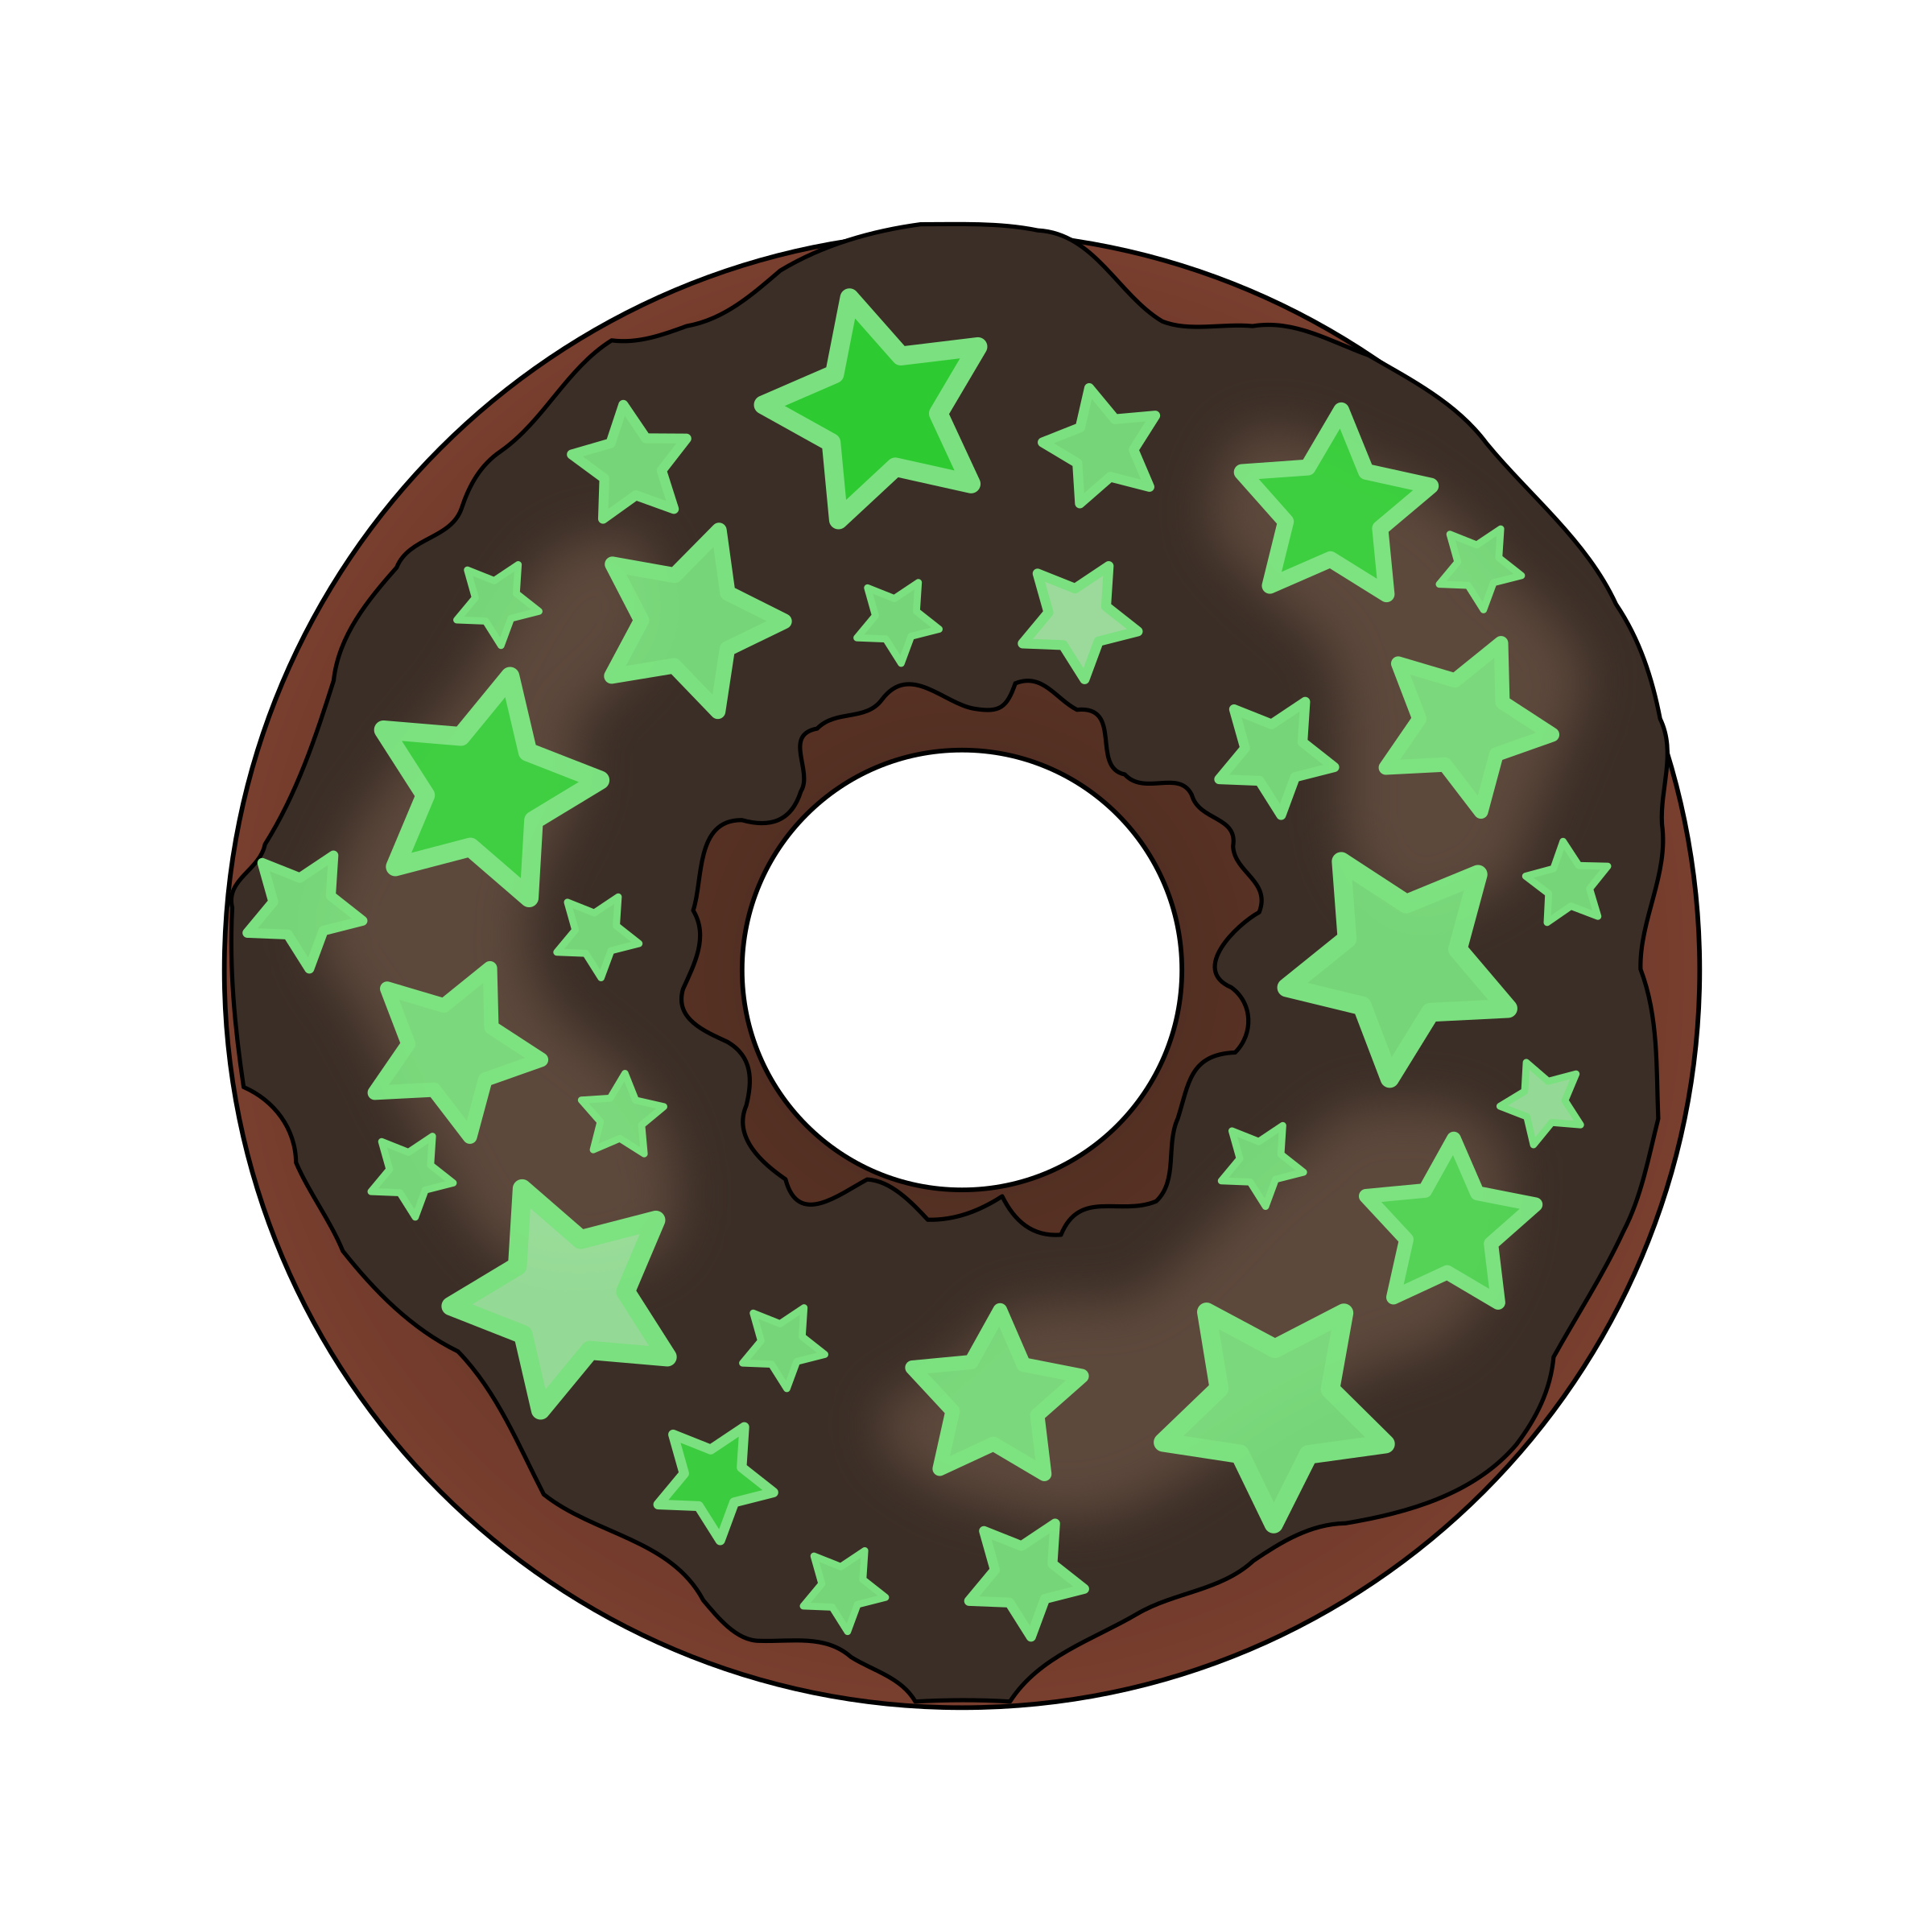 Glow in the Dark Donut by PinkJellyfish